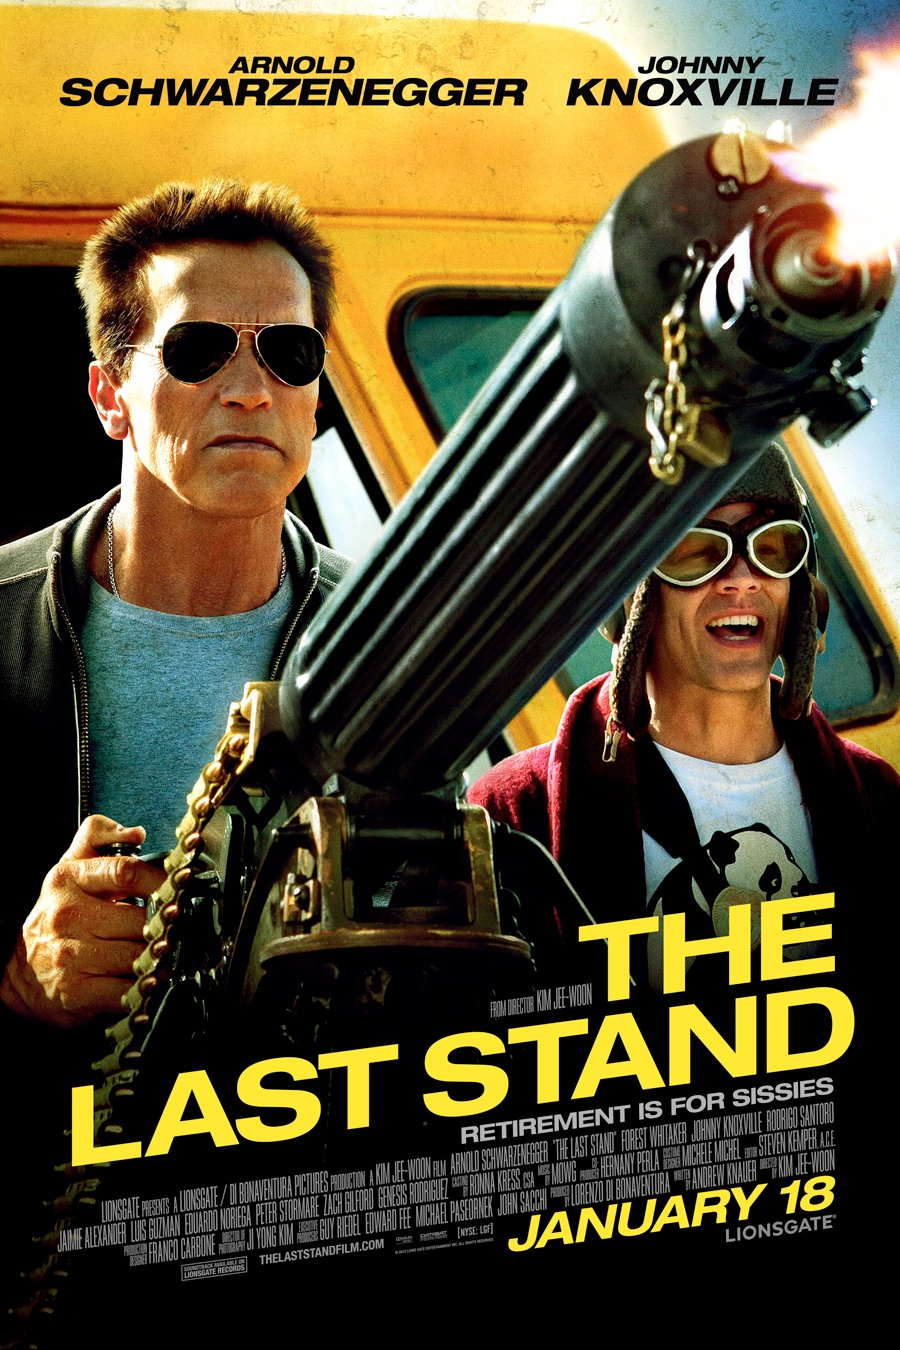 The Last Stand Giveaway: Win Posters, A T-Shirt, Arnold DVDs And More #6846